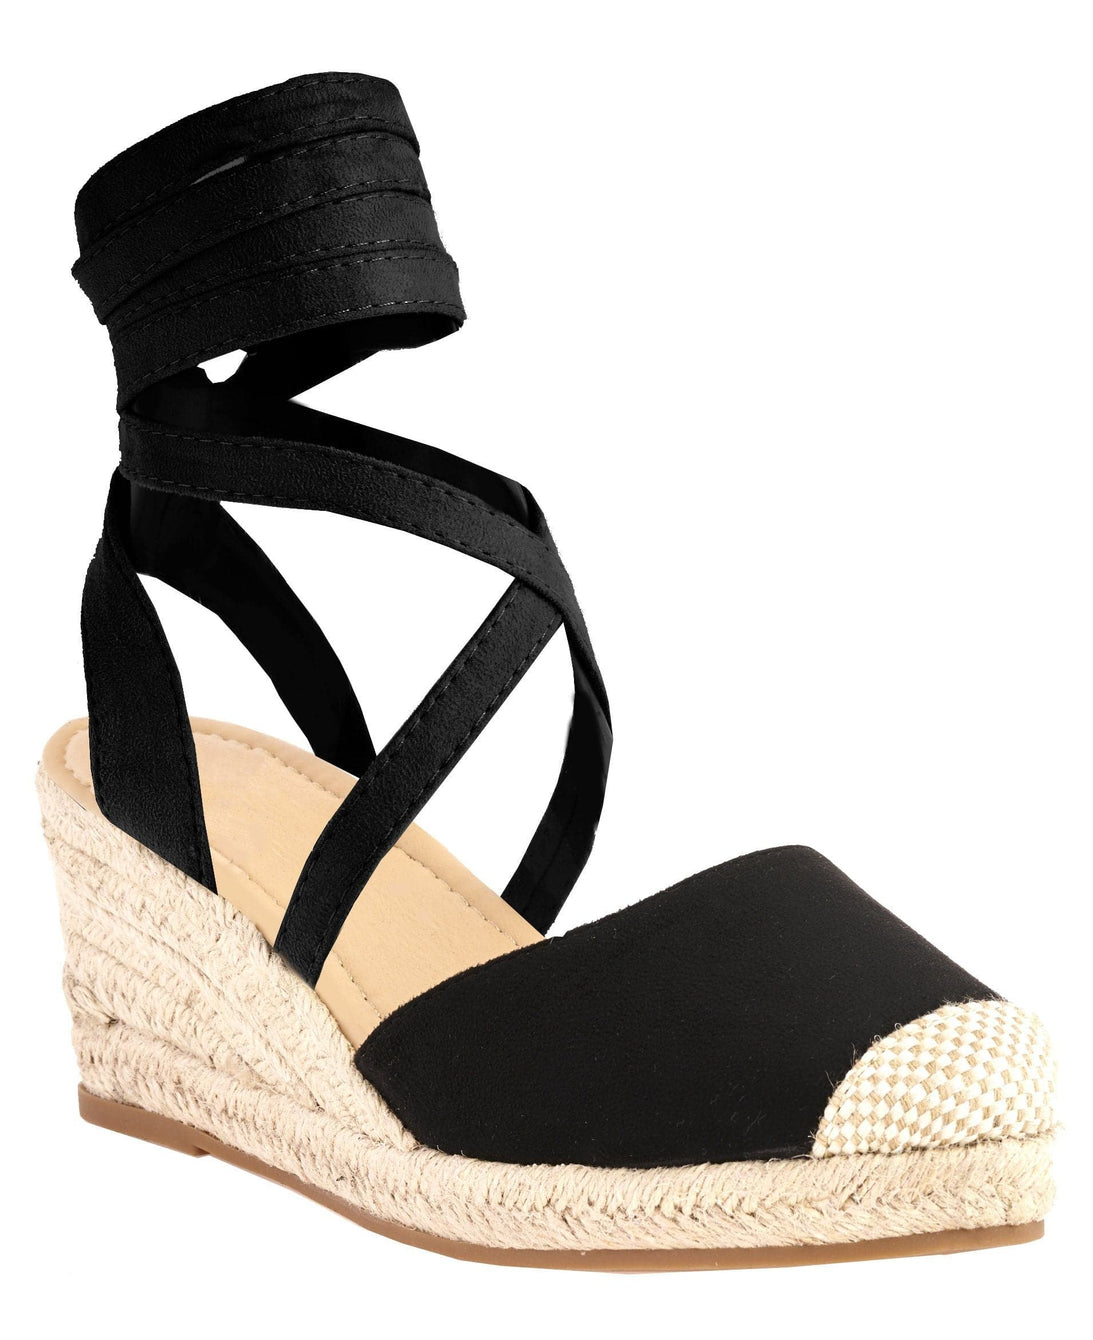 Maria Closed Toe Tie Up Espadrille Wedge in Black